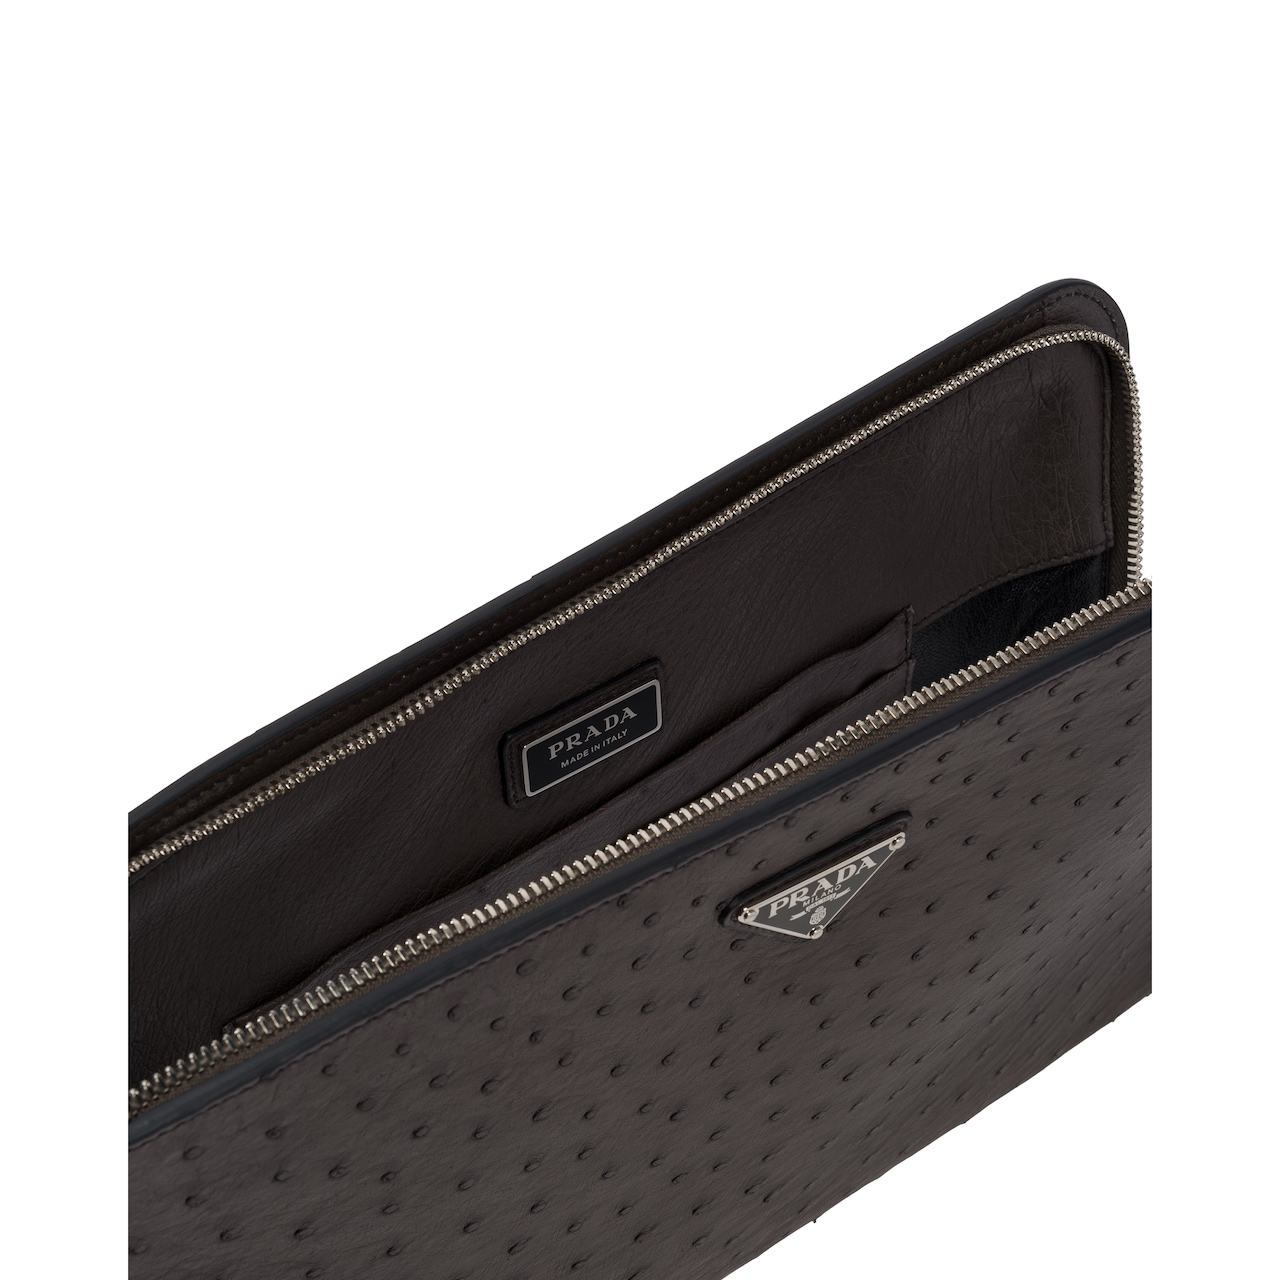 Ostrich leather document holder